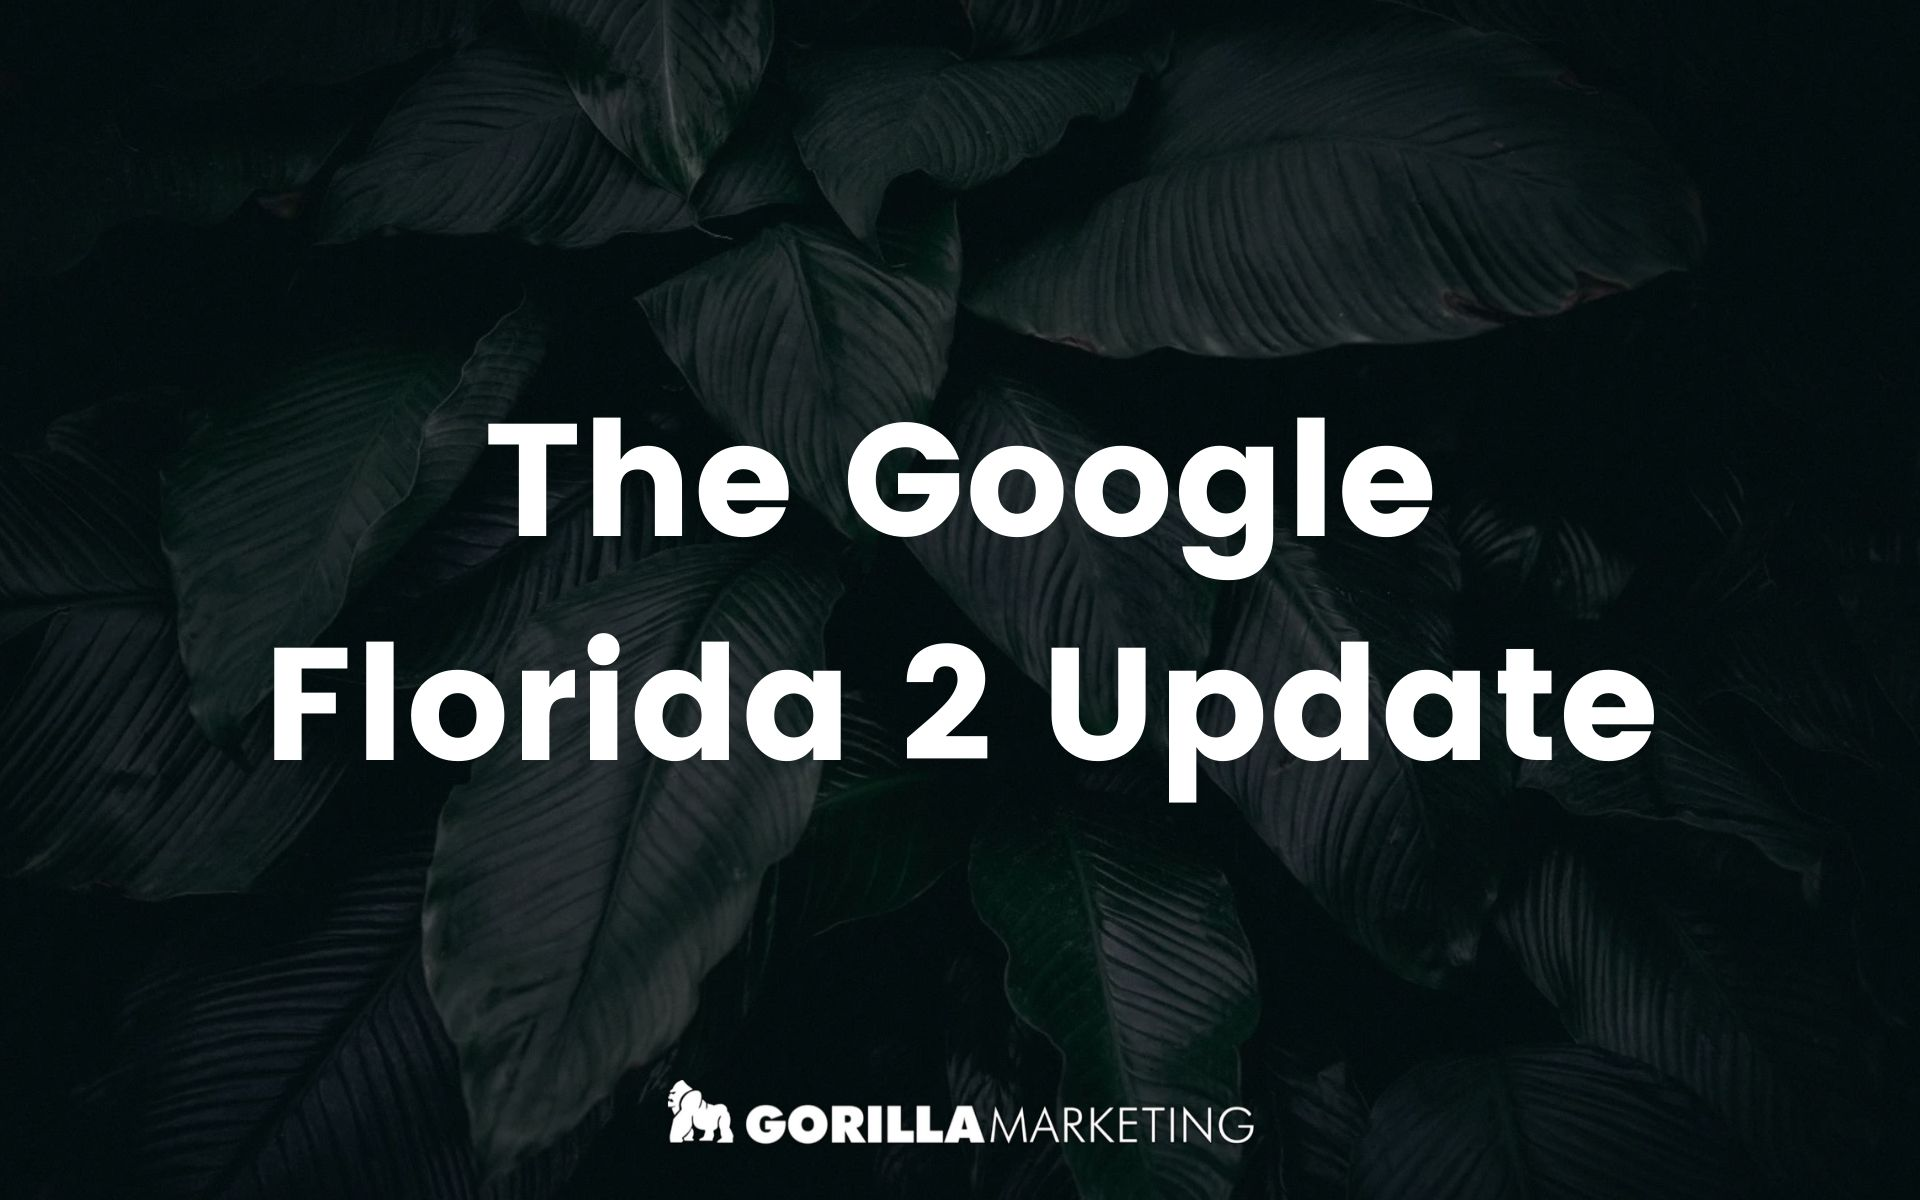 The Florida 2 Update